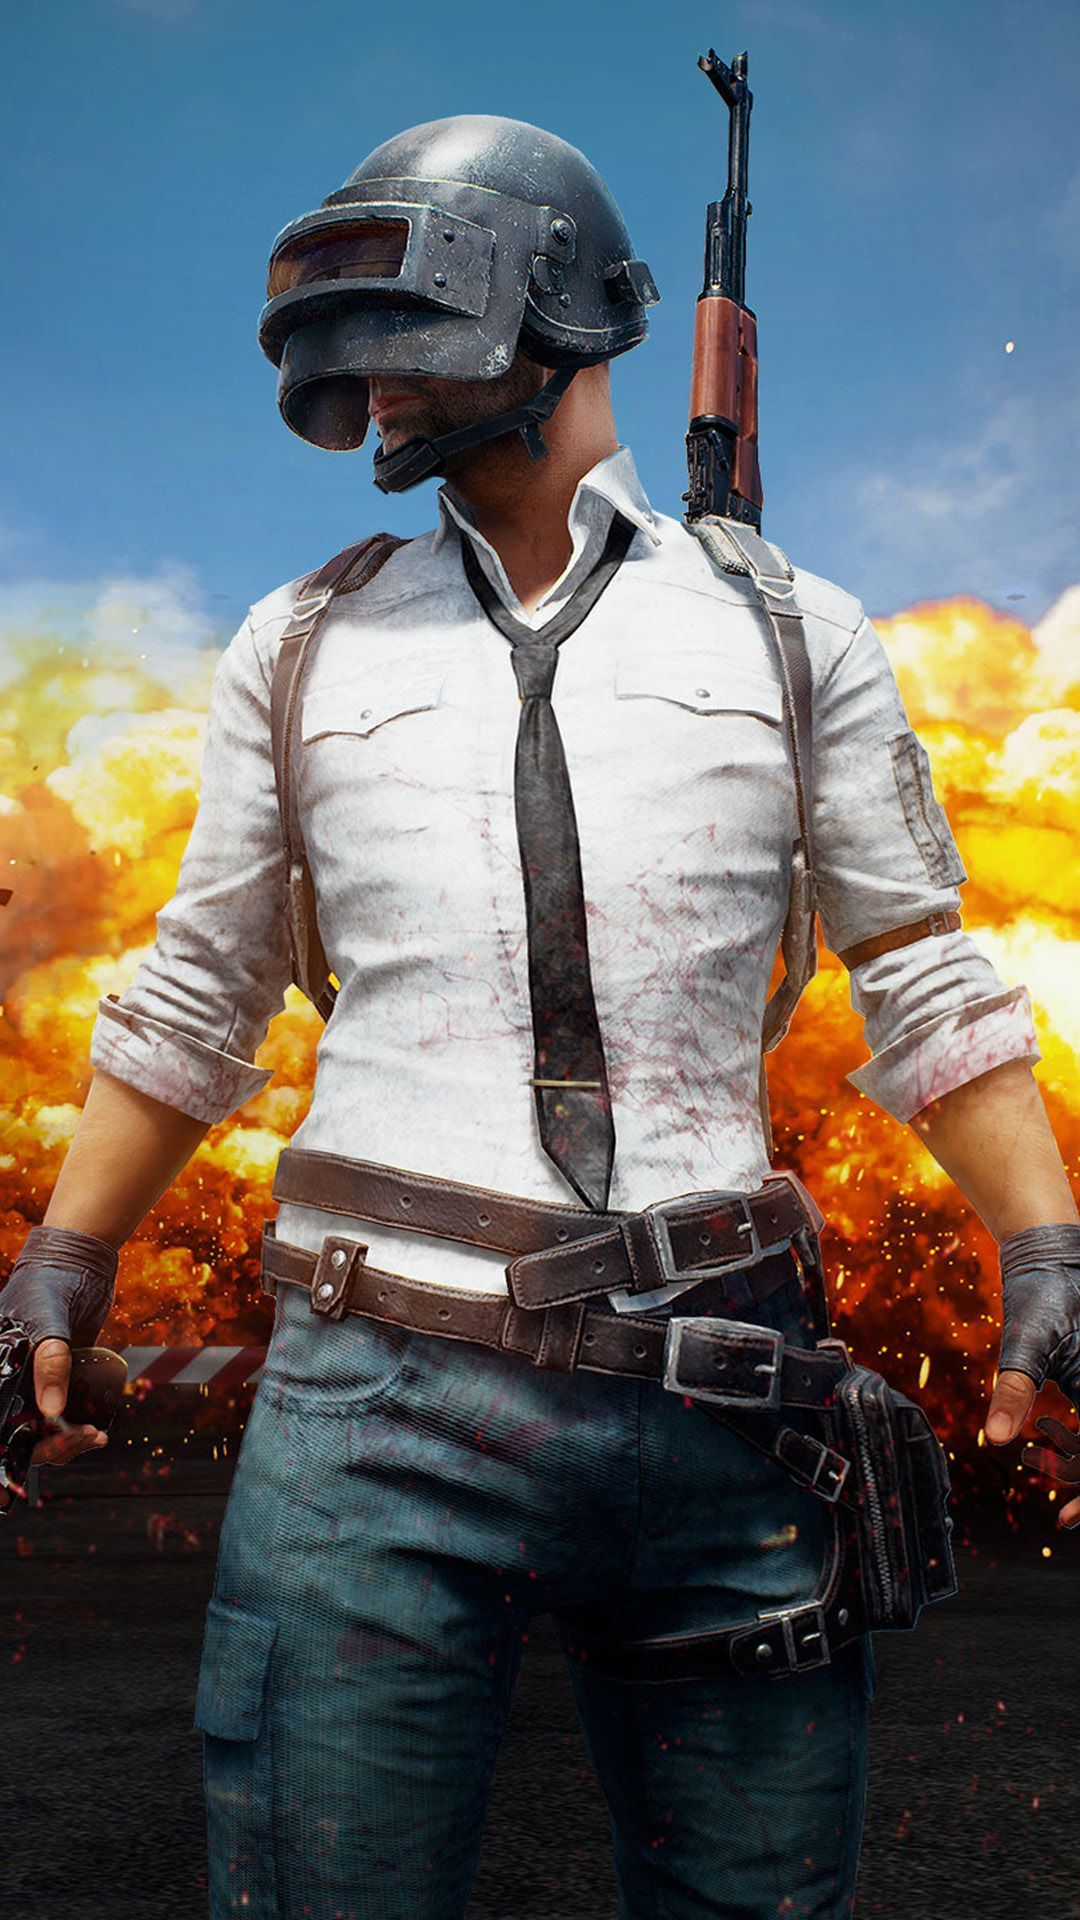 Player Unknown S Battlegrounds Pubg 4k Pubg Wallpaper Phone Pubg Wallpaper Iphone Pubg Wa 4k Wallpaper For Mobile Mobile Wallpaper Hd Wallpapers For Mobile